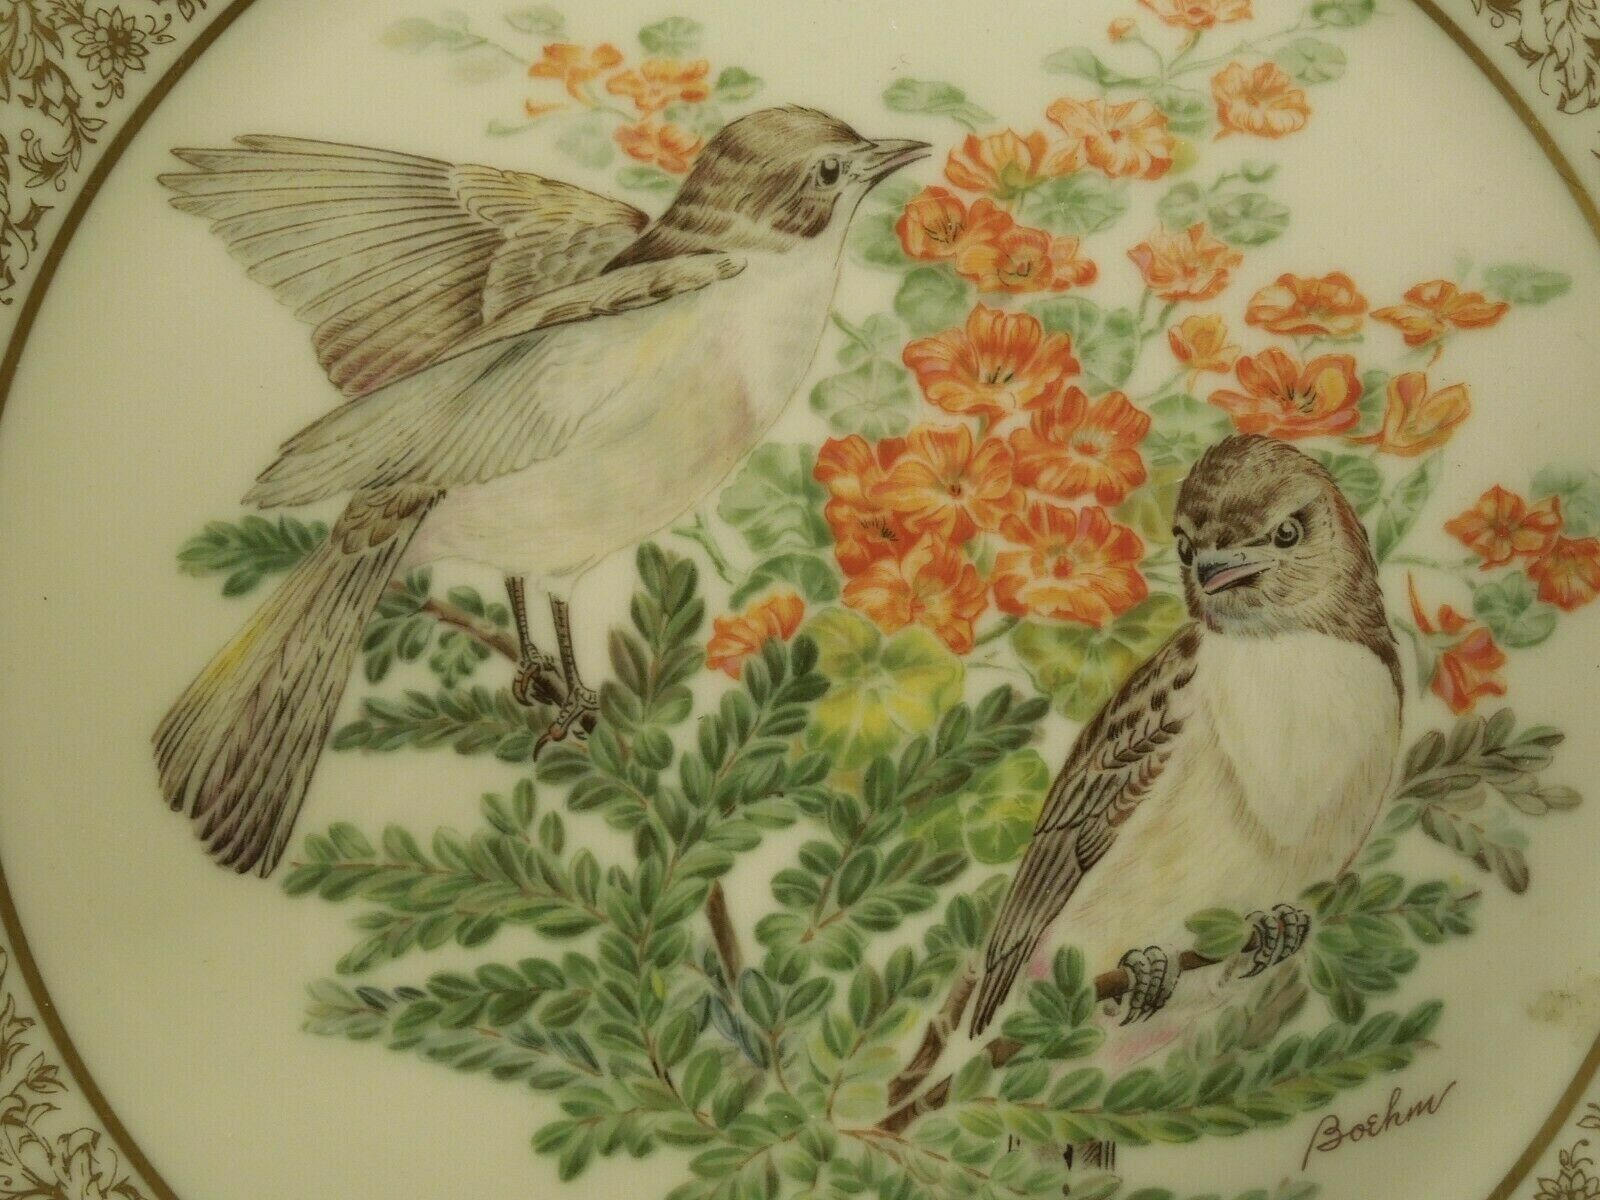 Vintage 1975 Lenox Presents Limited Edition Boehm Eastern Phoebe Birds Plate